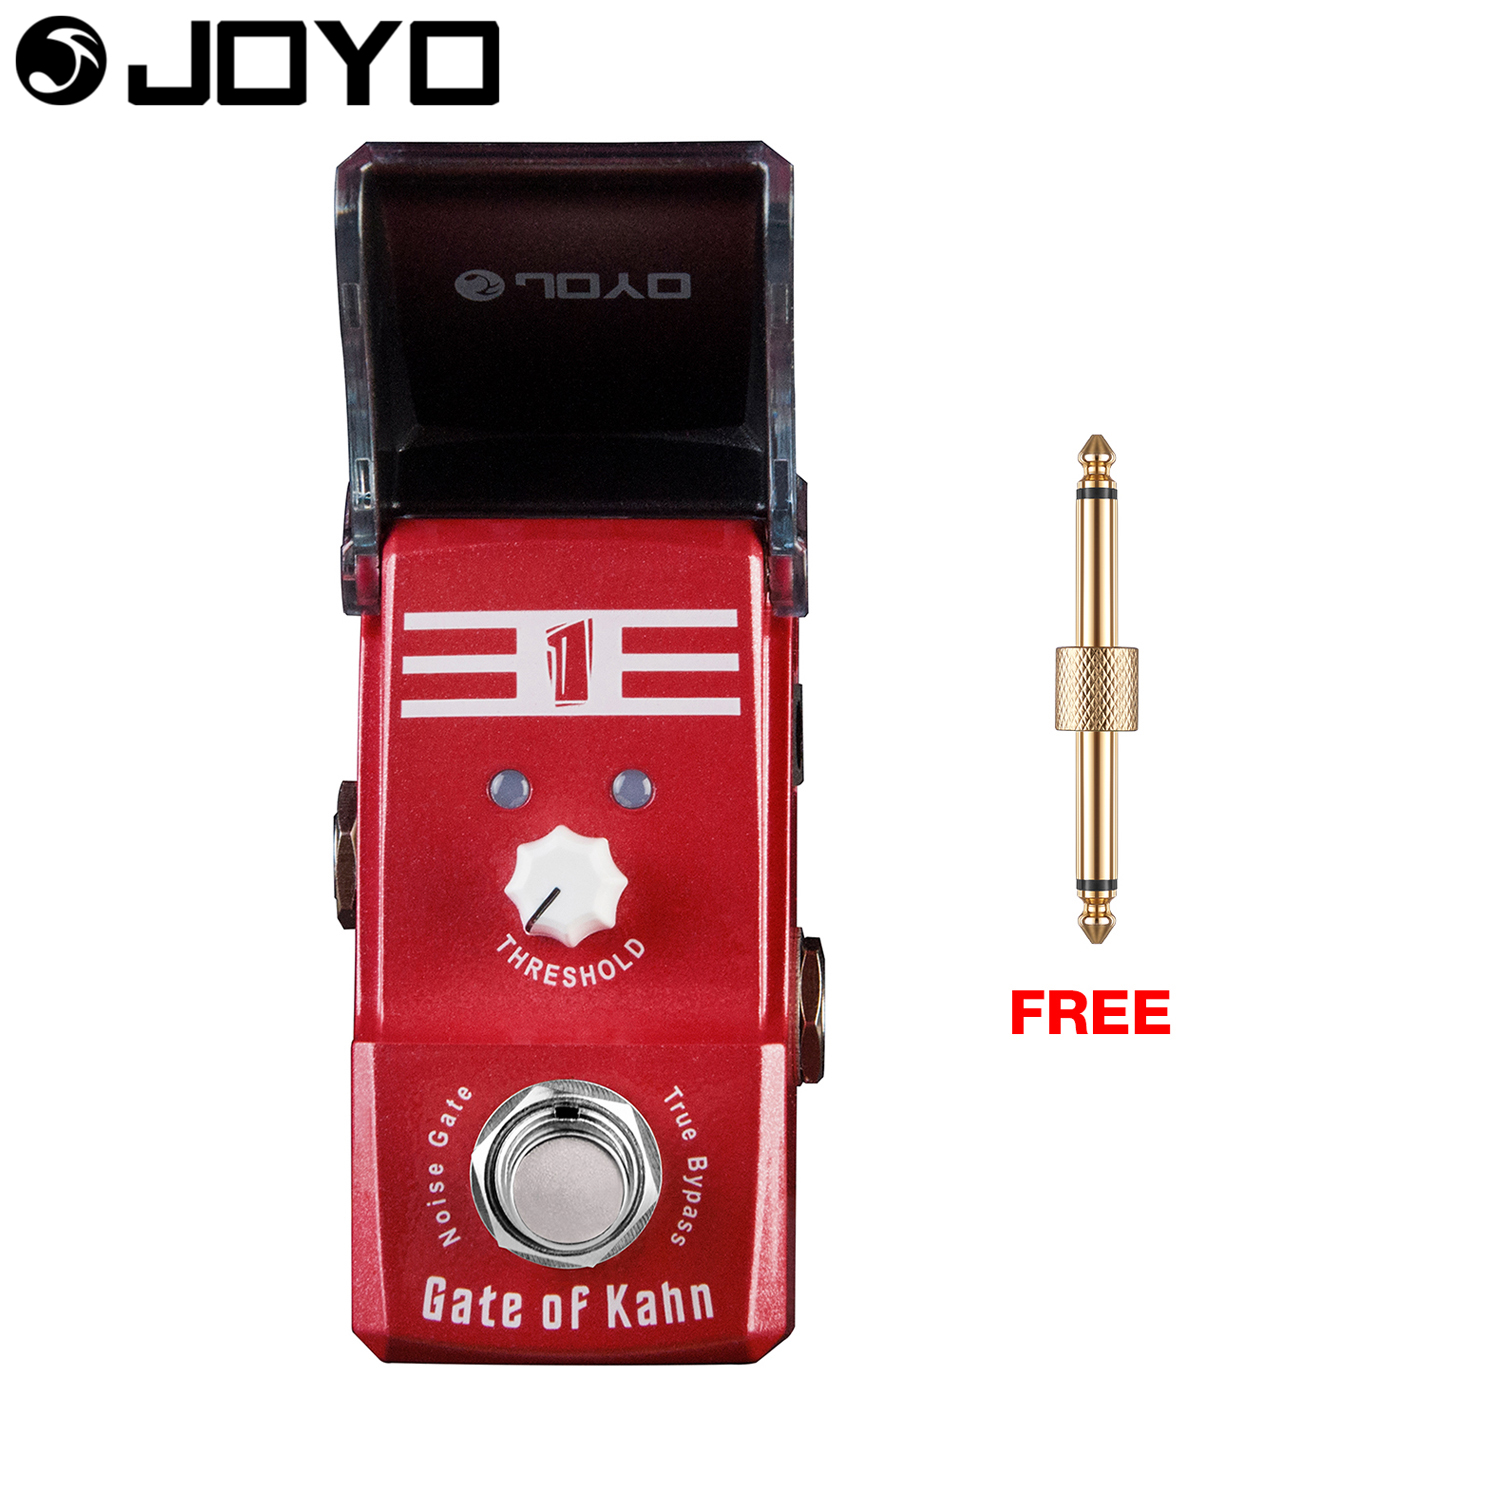 Joyo Gate of Kahn Noise Gate Guitar Effect Pedal Threshold Controls True Bypass JF-324 with Free Gift Connector aroma adr 3 dumbler amp simulator guitar effect pedal mini single pedals with true bypass aluminium alloy guitar accessories